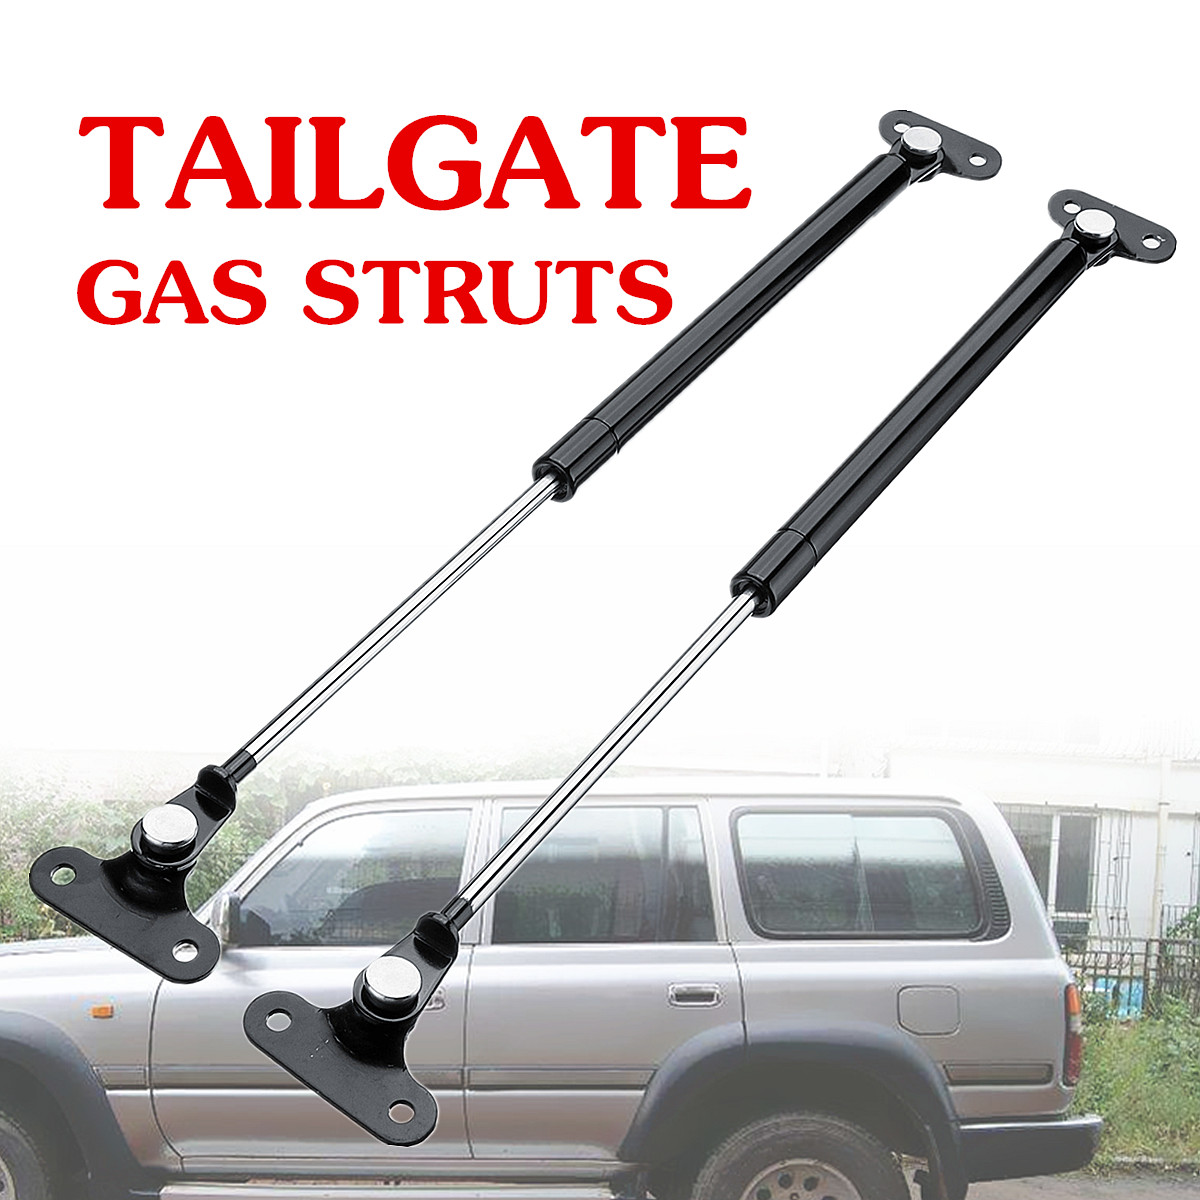 1 Pair Rear Tailgate Gas Struts Supports For Toyota Land Cruiser 80 Series 90-97 Steel 53cm Direct Fit Replacement Convenient1 Pair Rear Tailgate Gas Struts Supports For Toyota Land Cruiser 80 Series 90-97 Steel 53cm Direct Fit Replacement Convenient